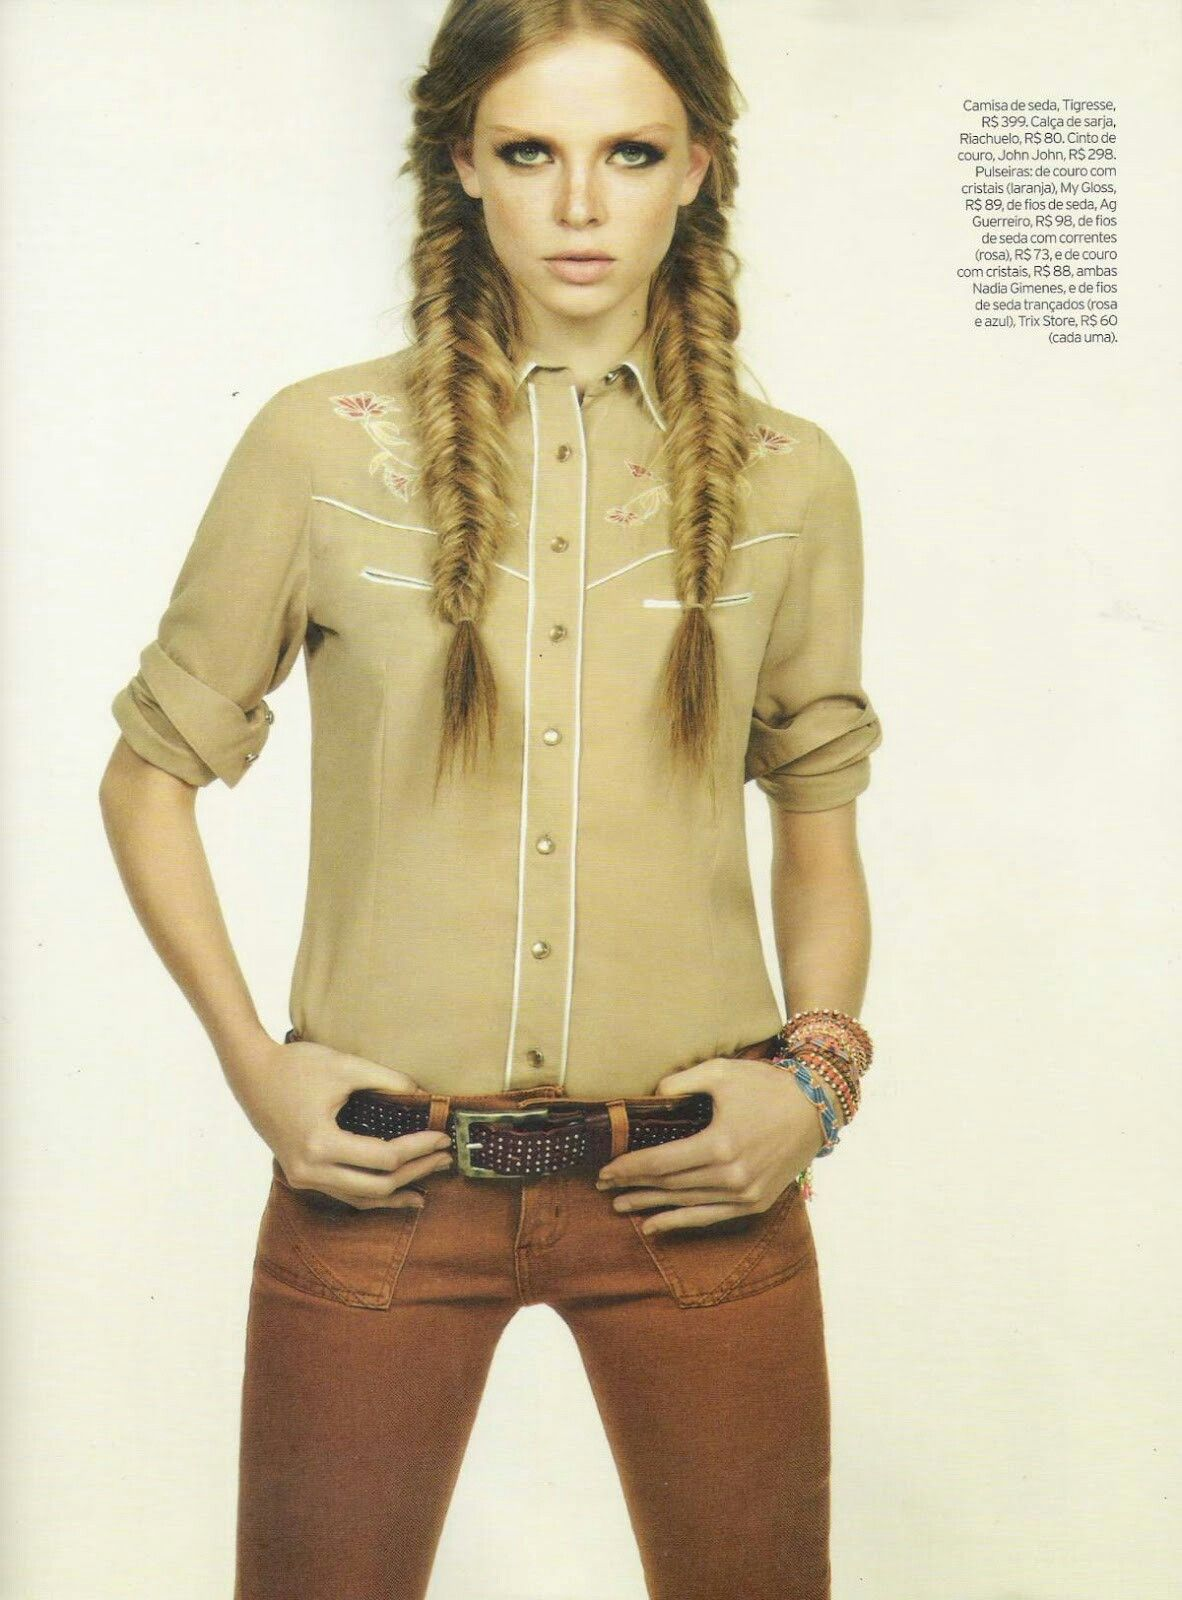 Cowgirl Hairstyles Pinfox Firre On Elle Brasil Dezembro 2012  Pinterest